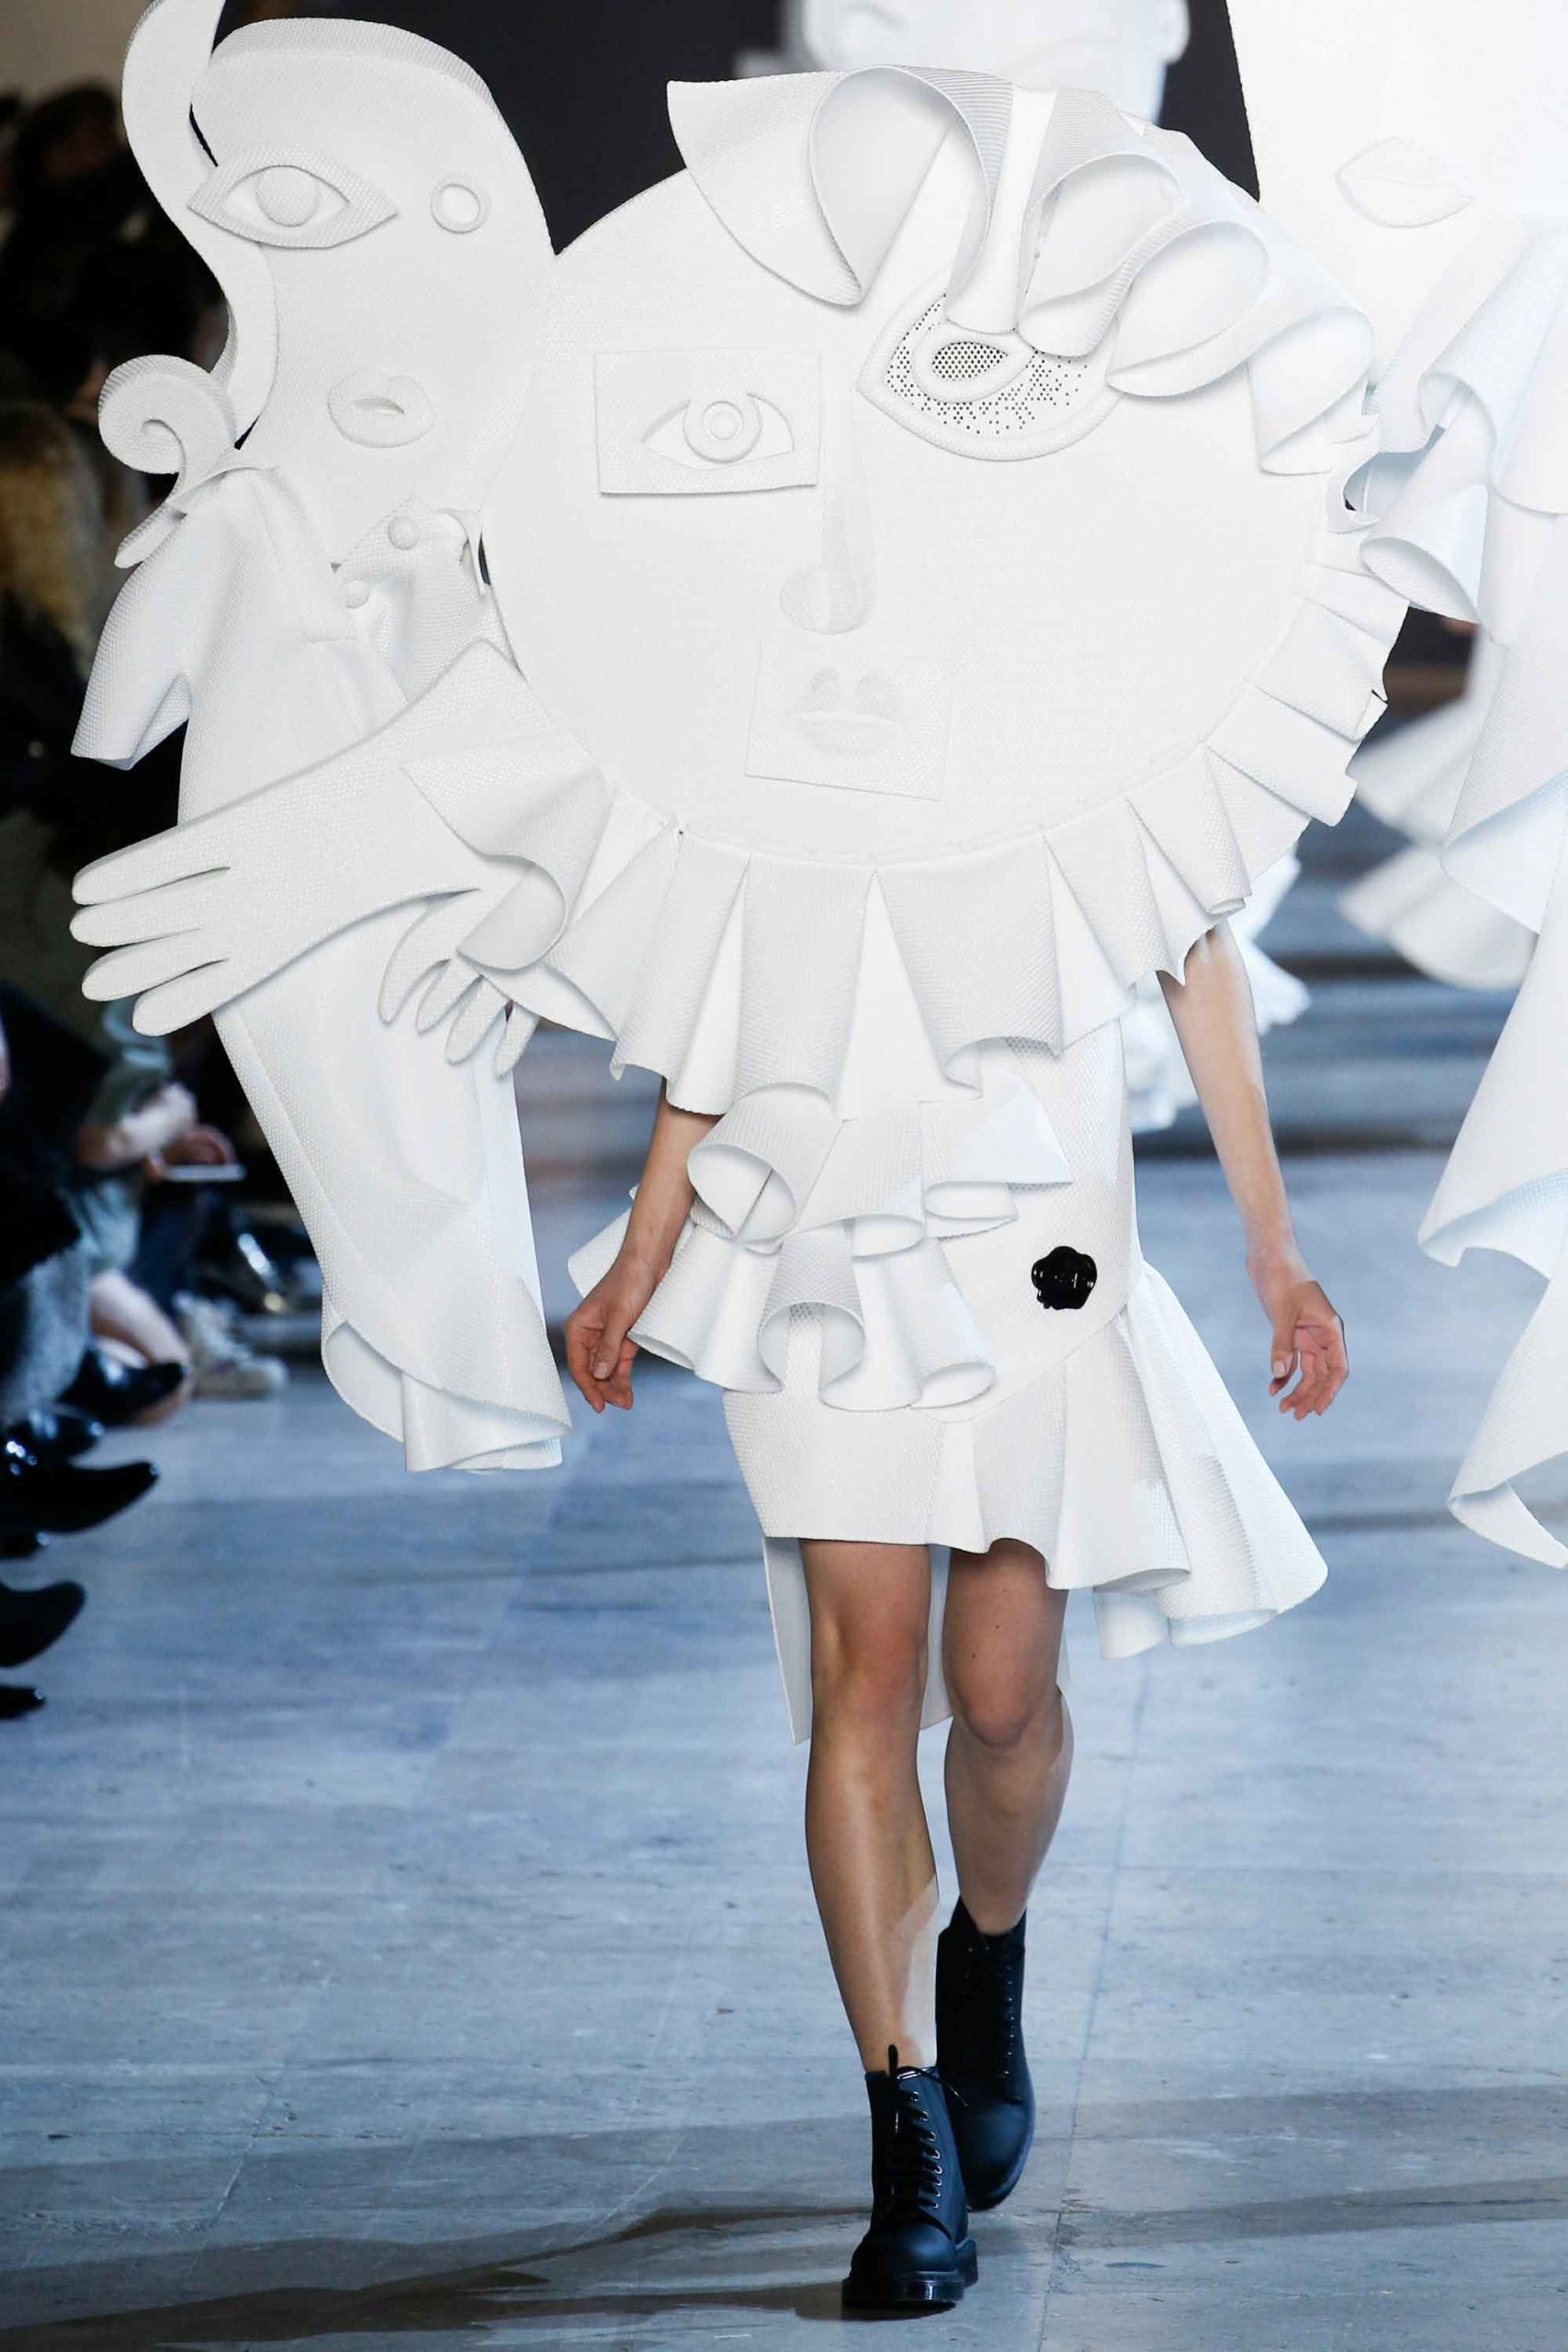 VIKTOR & ROLF – SPRING 2026 COUTURE